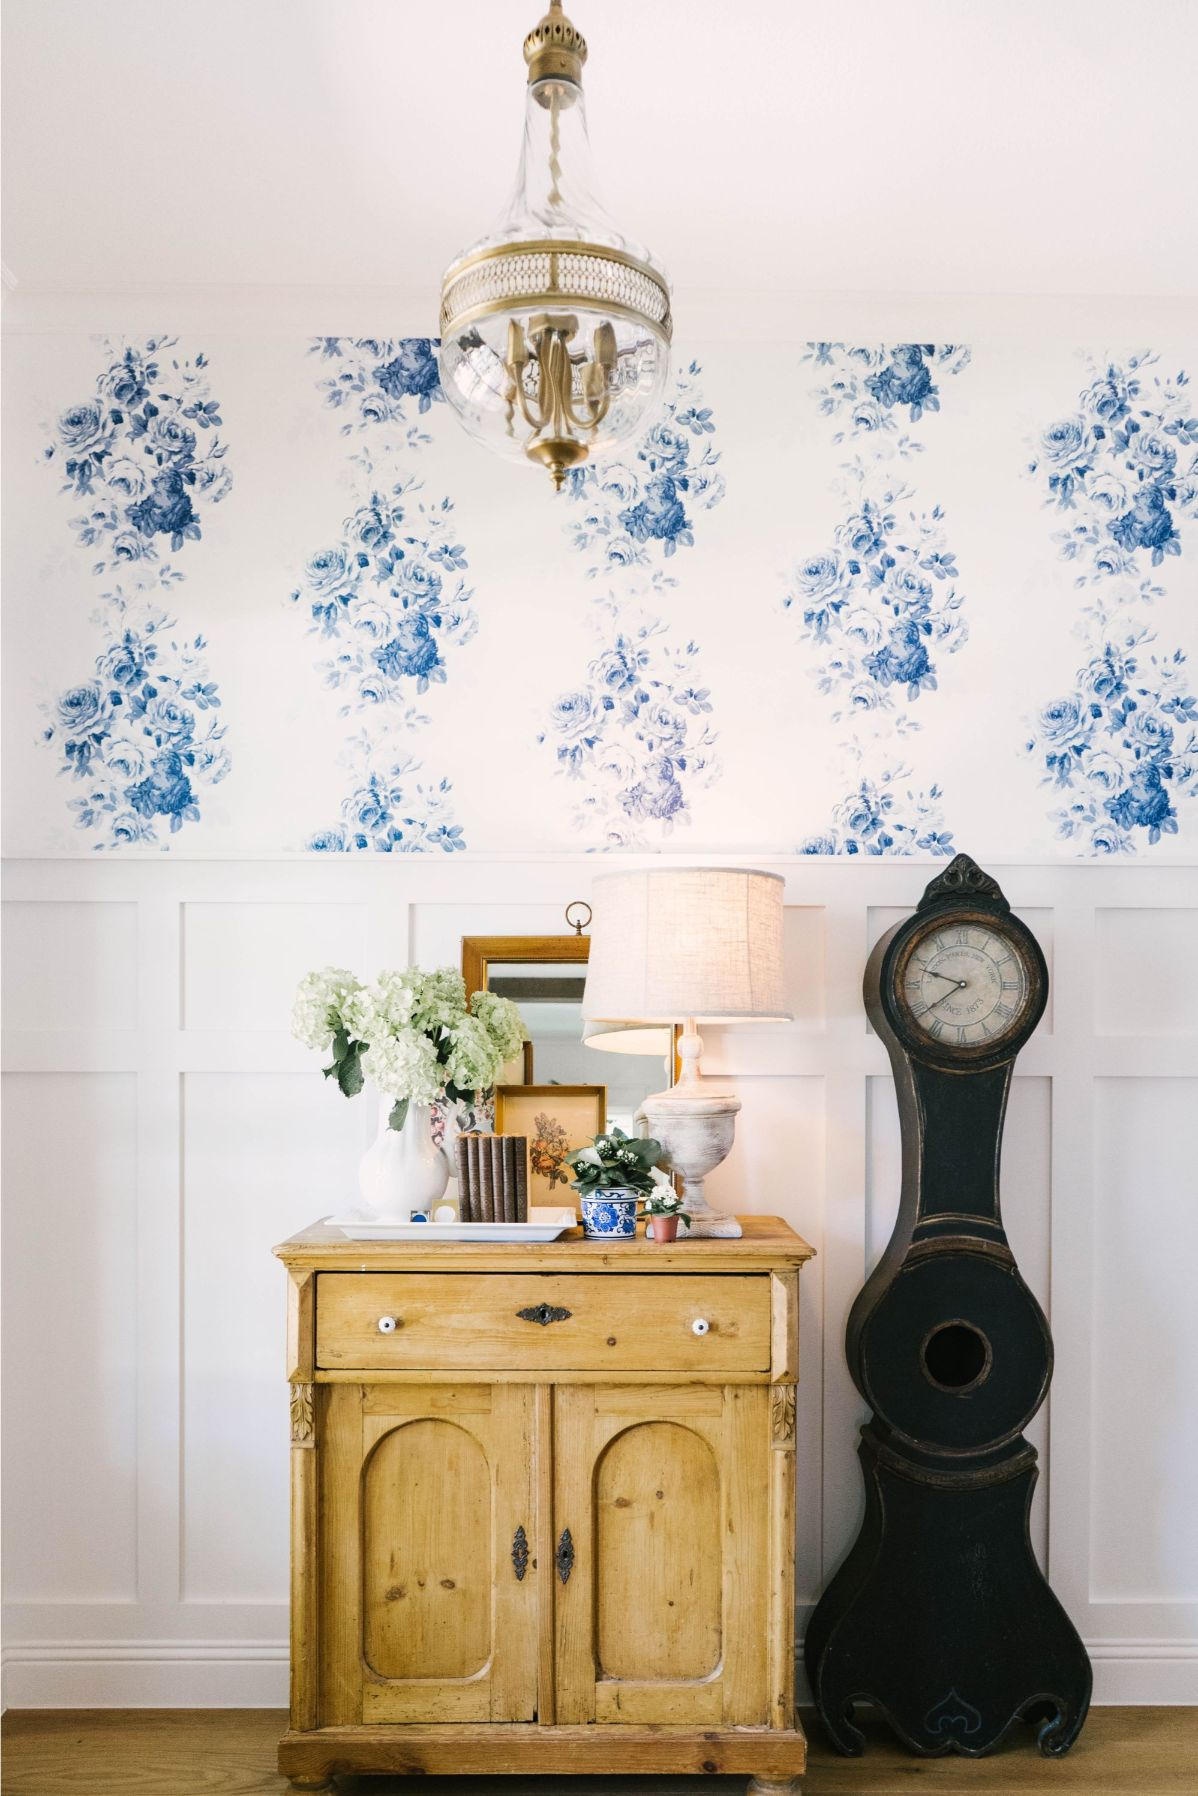 Farmhouse Entry Way - Blue Floral Wall Paper